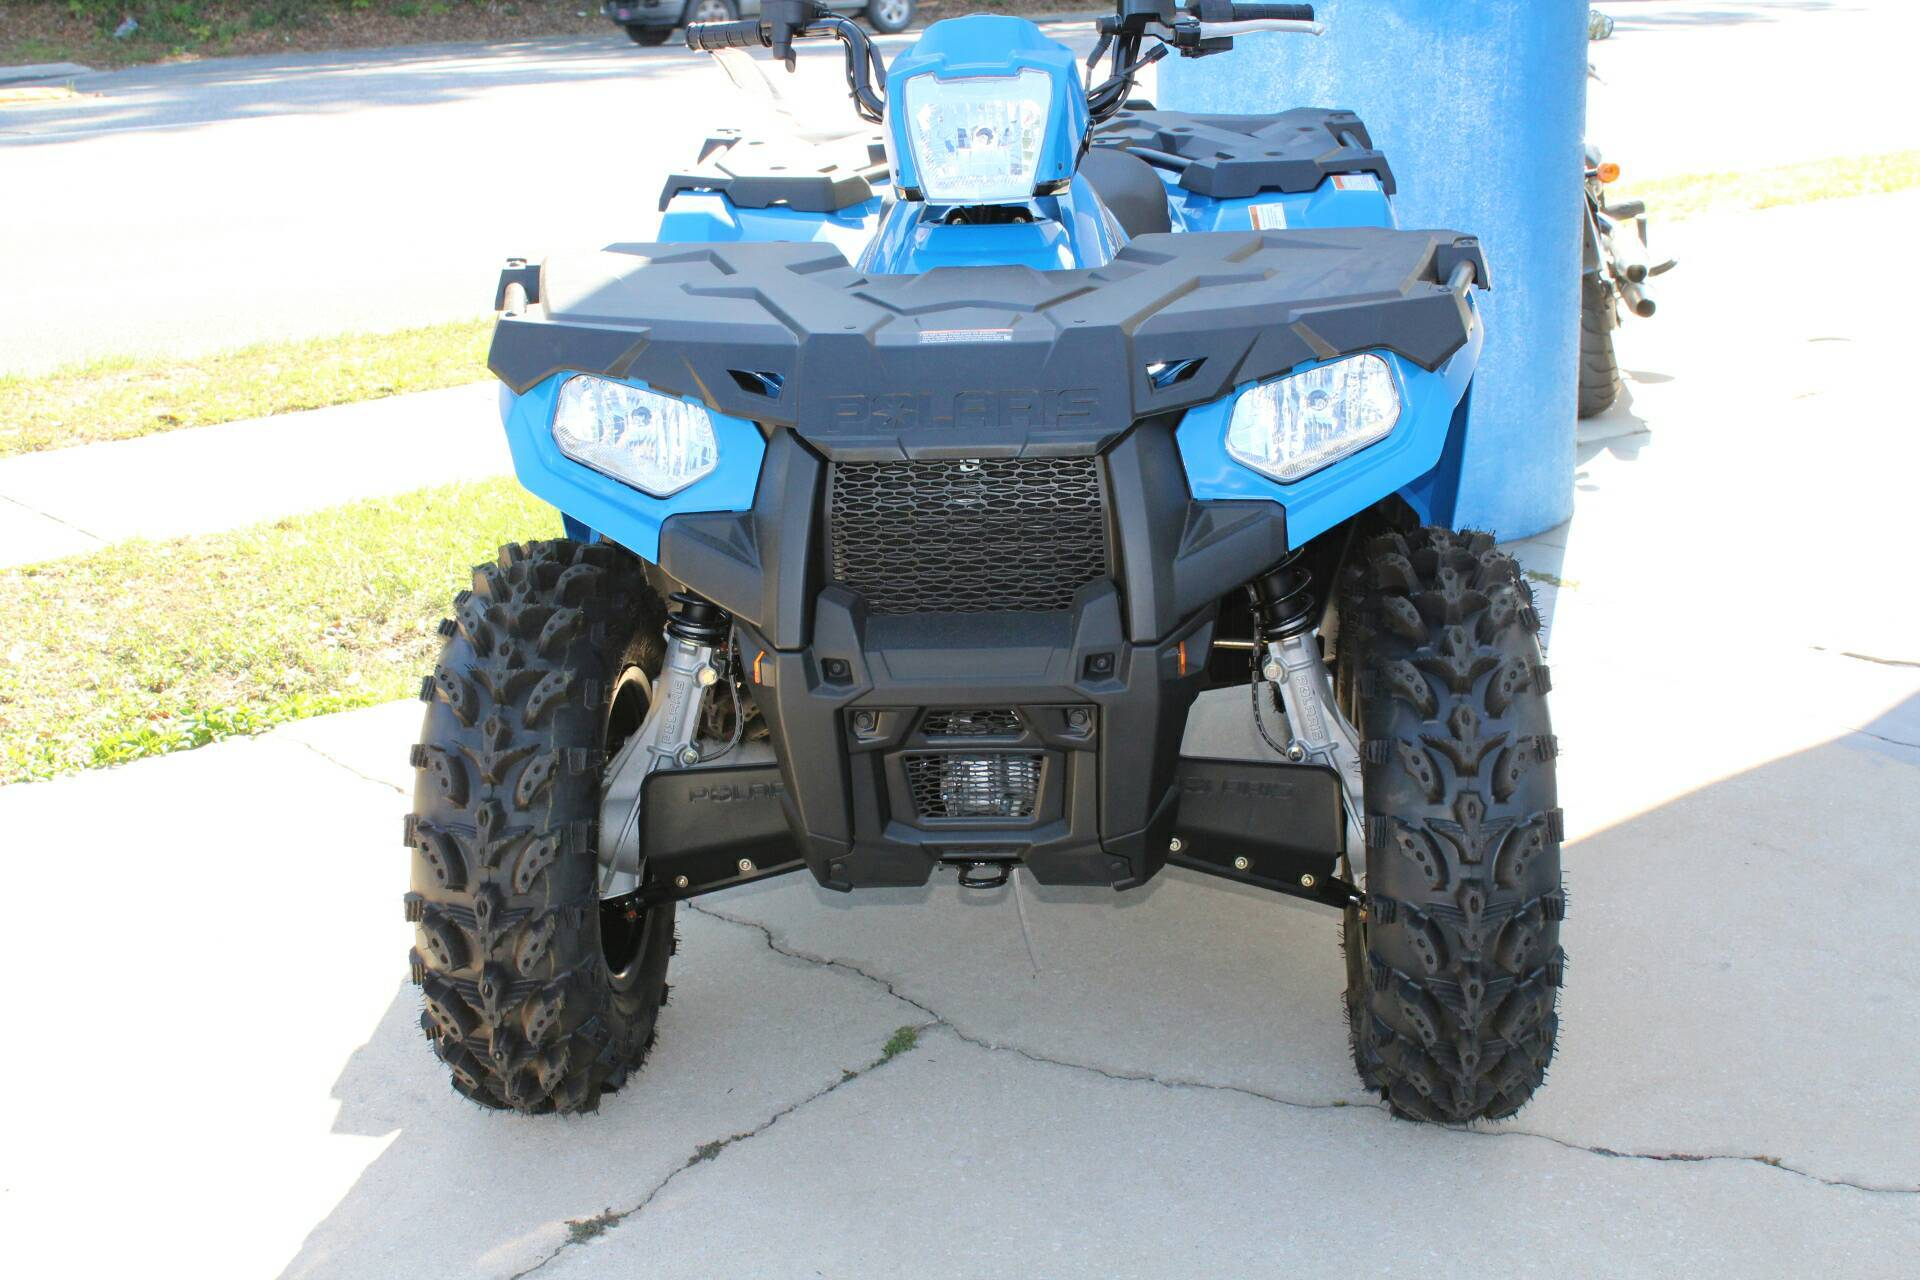 2017 Polaris Sportsman 570 for sale 3318